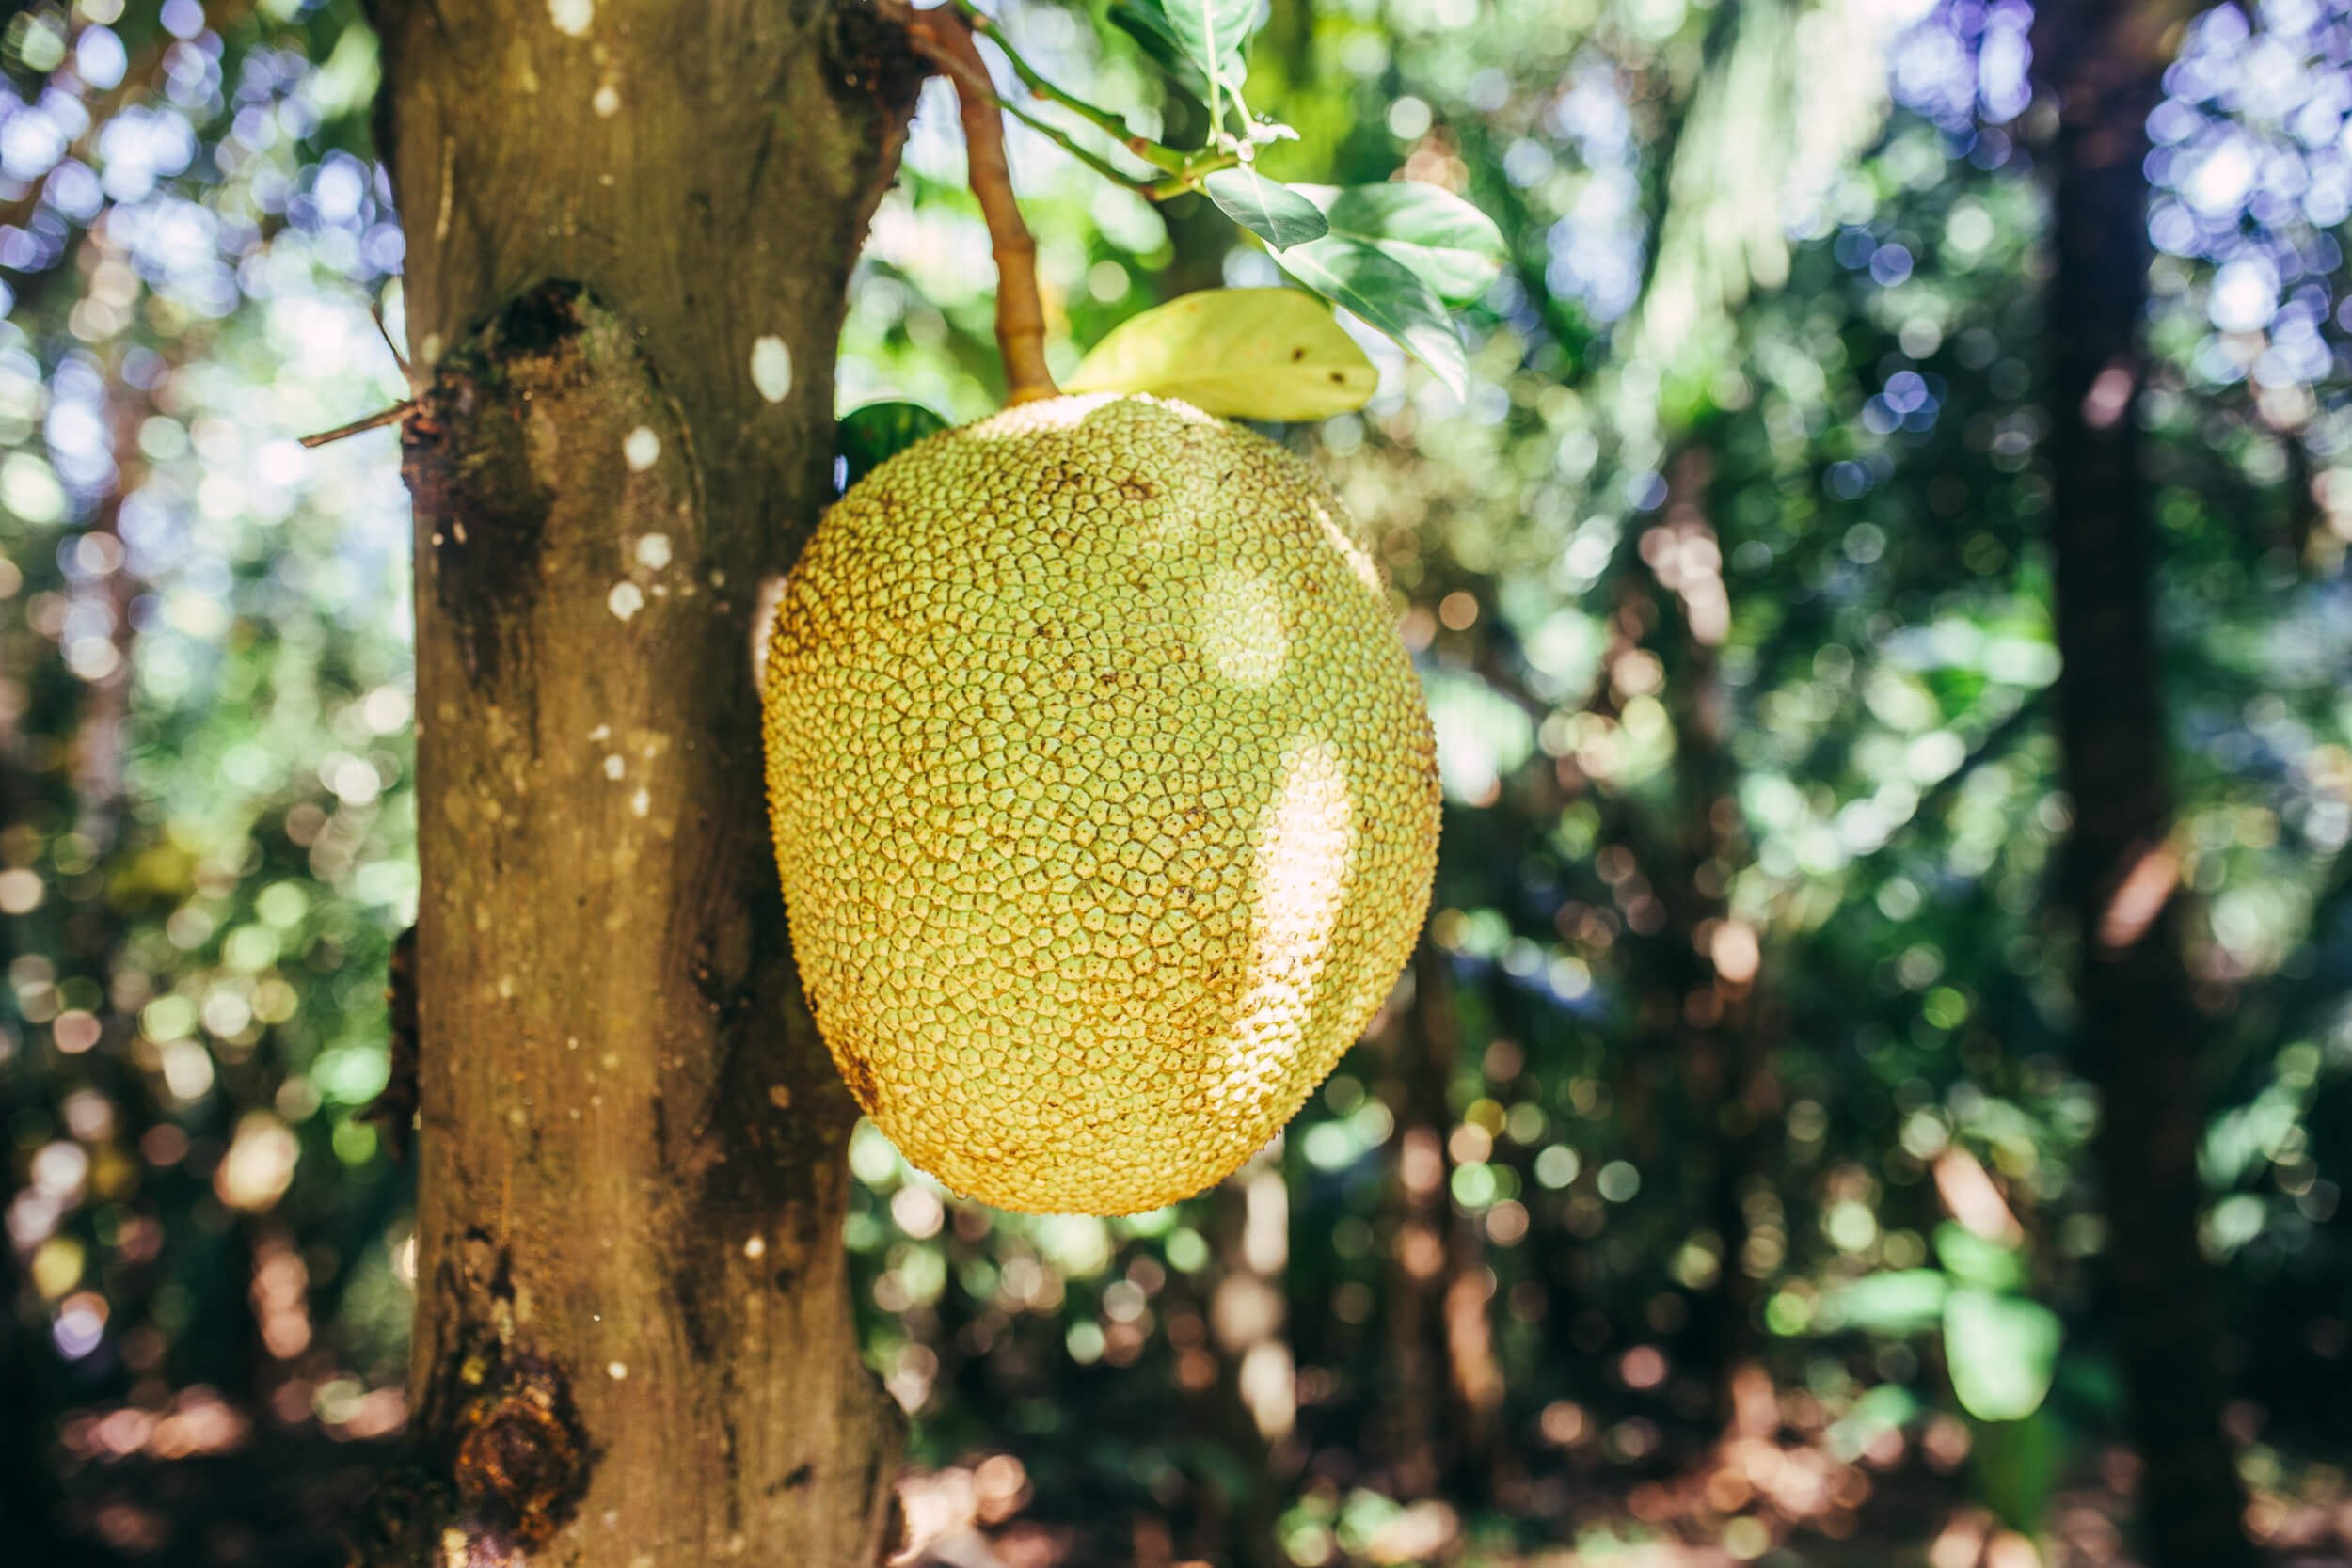 jackfruit growing on the tree. Selvista farm produce